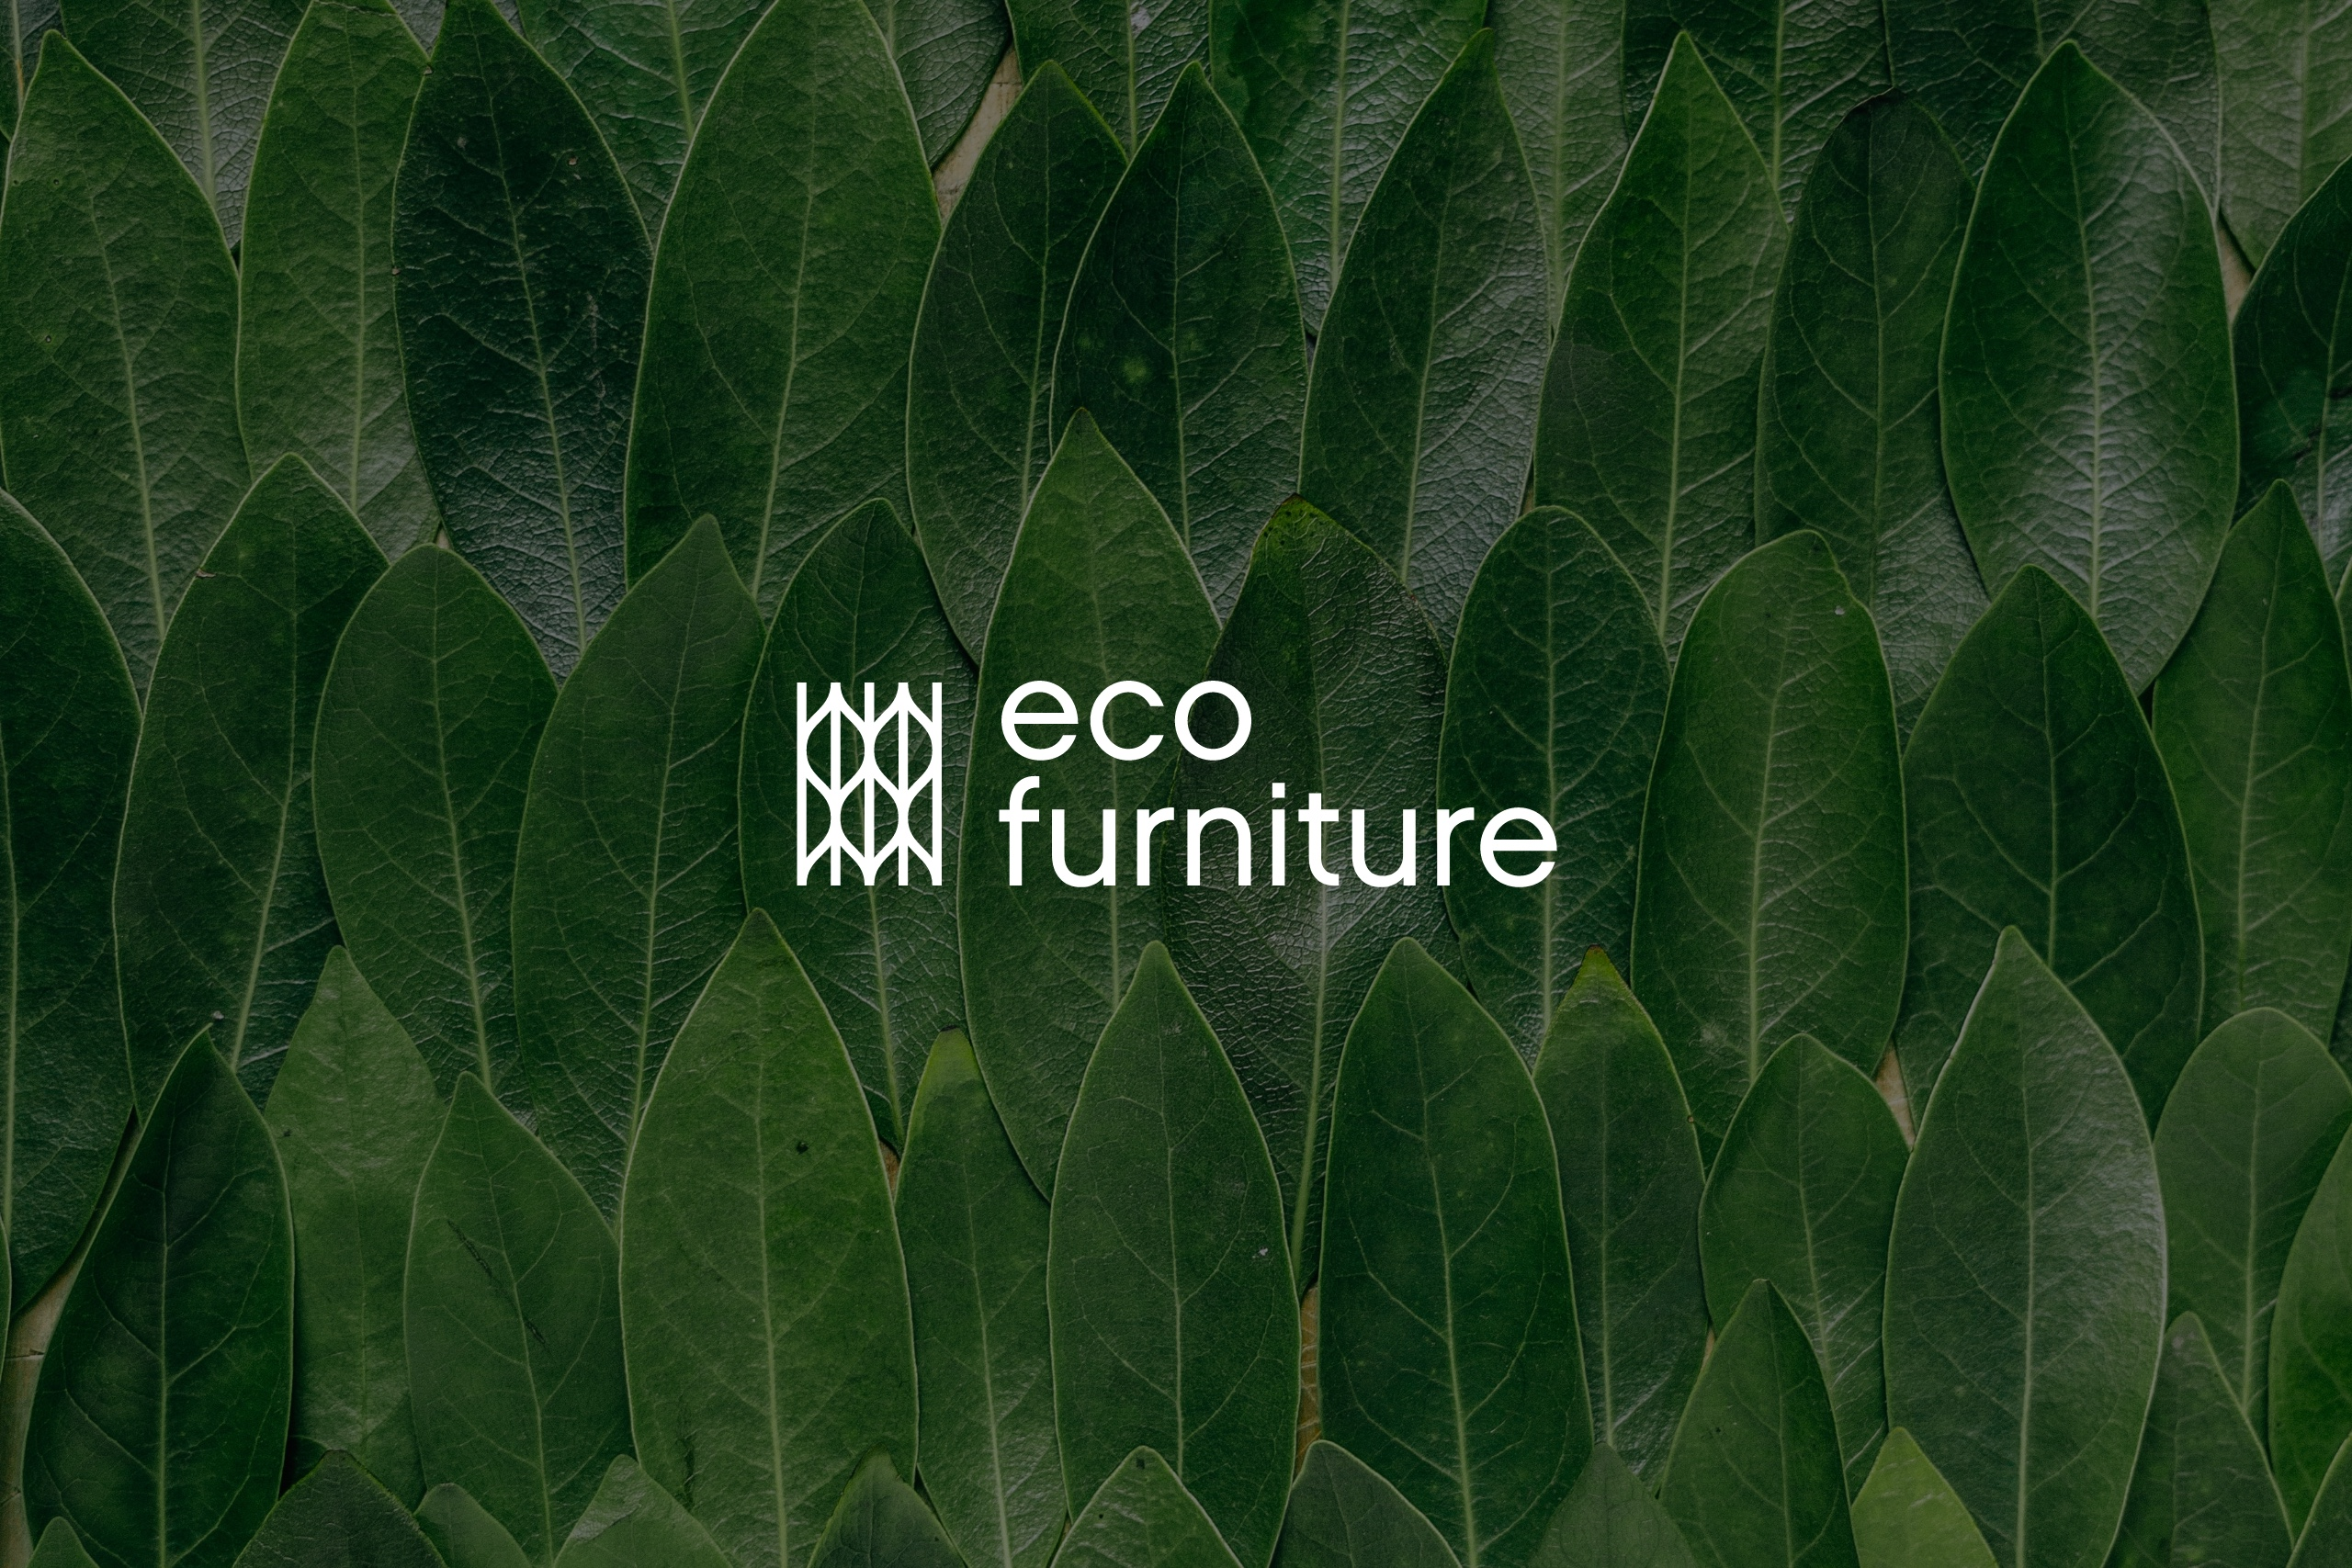 Eco Furniture branding